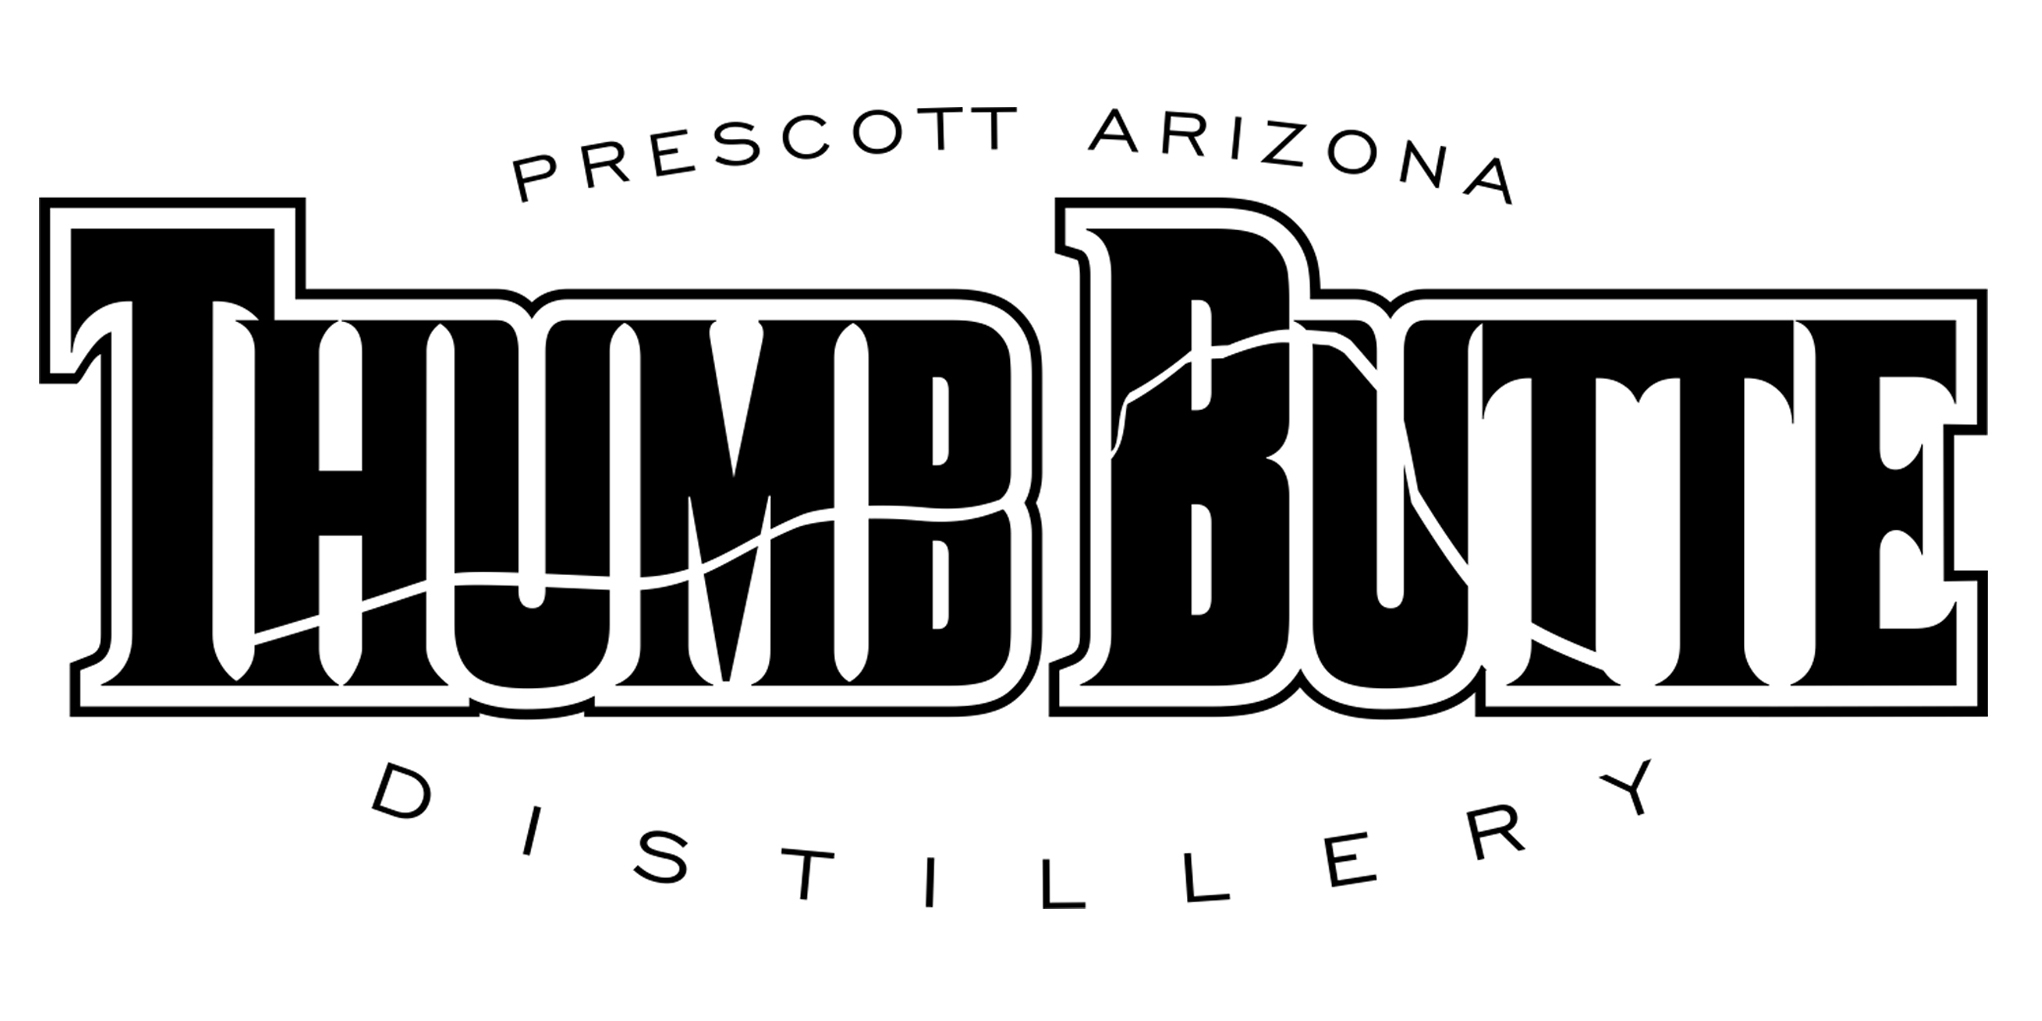 Arizona Whiskey, Vodka, Gin and Rum -Thumb Butte Distillery